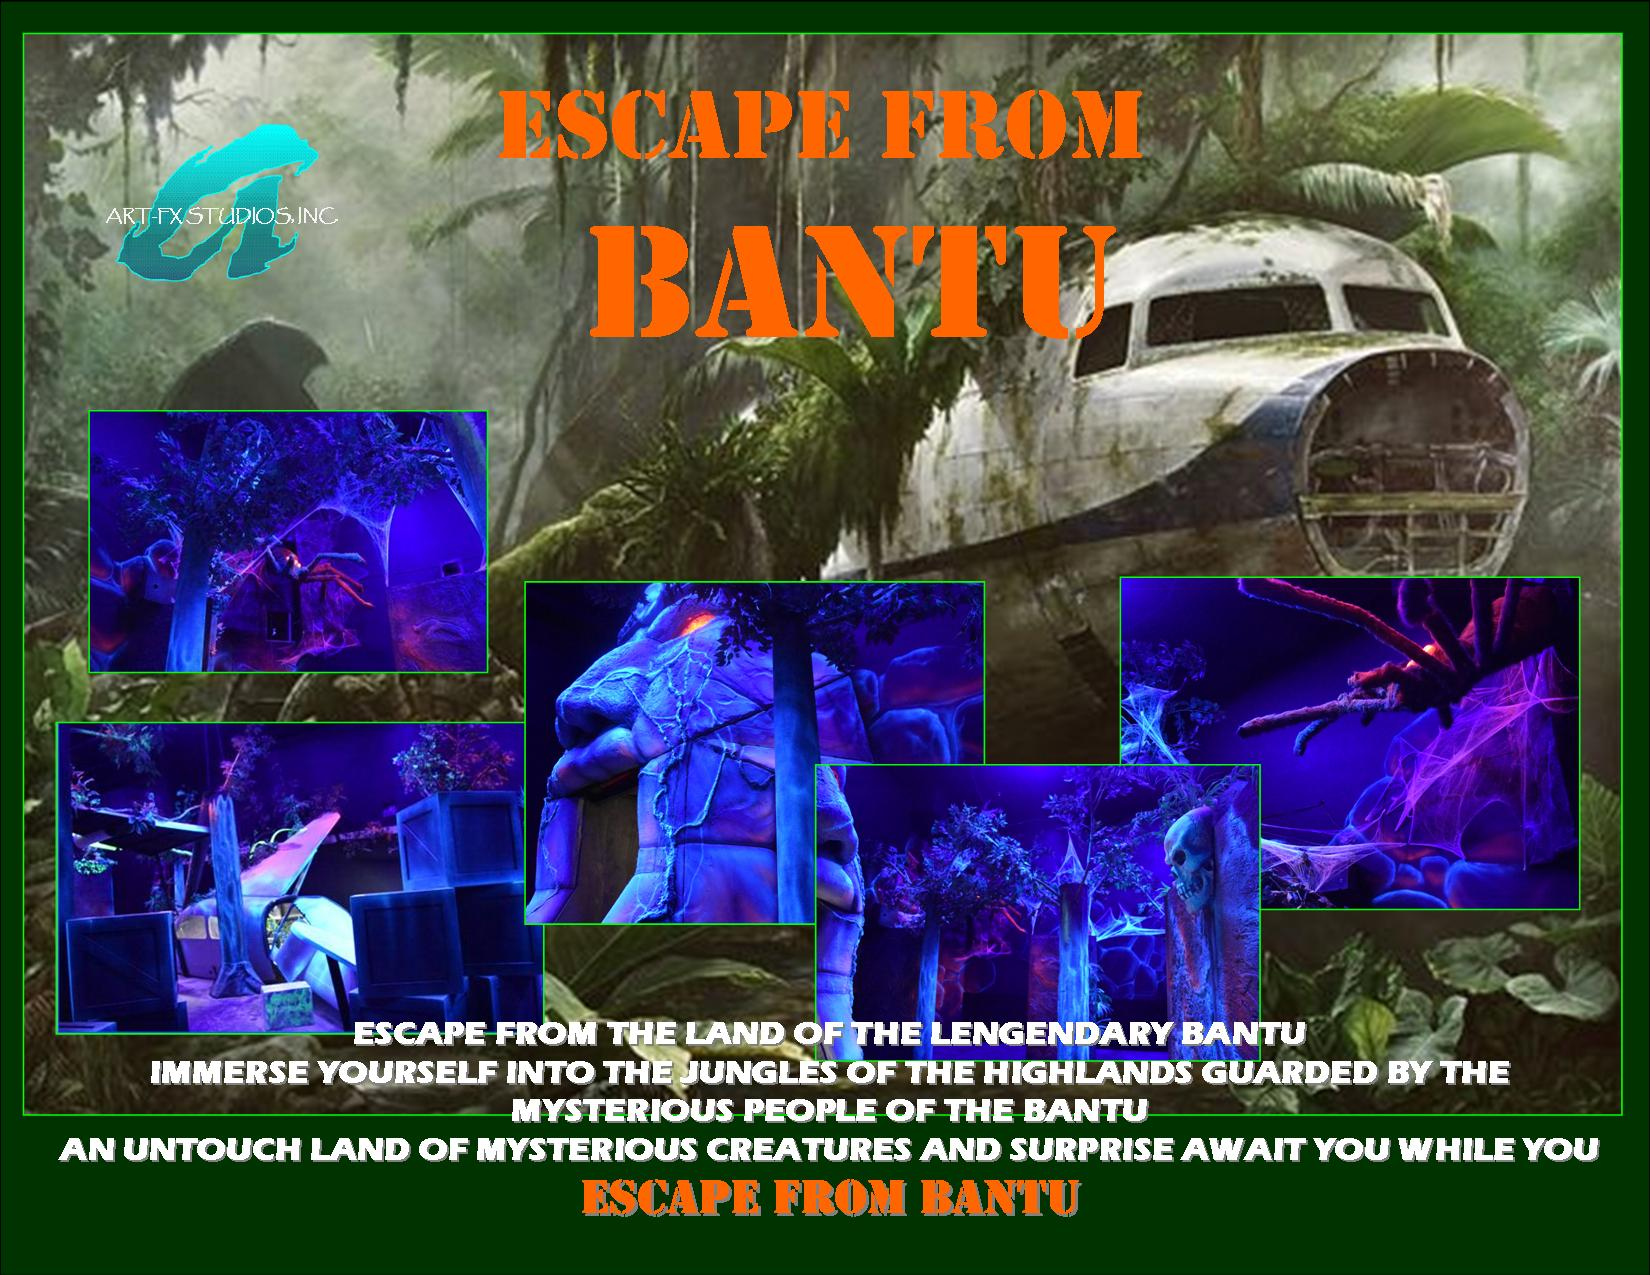 escapes from bantu